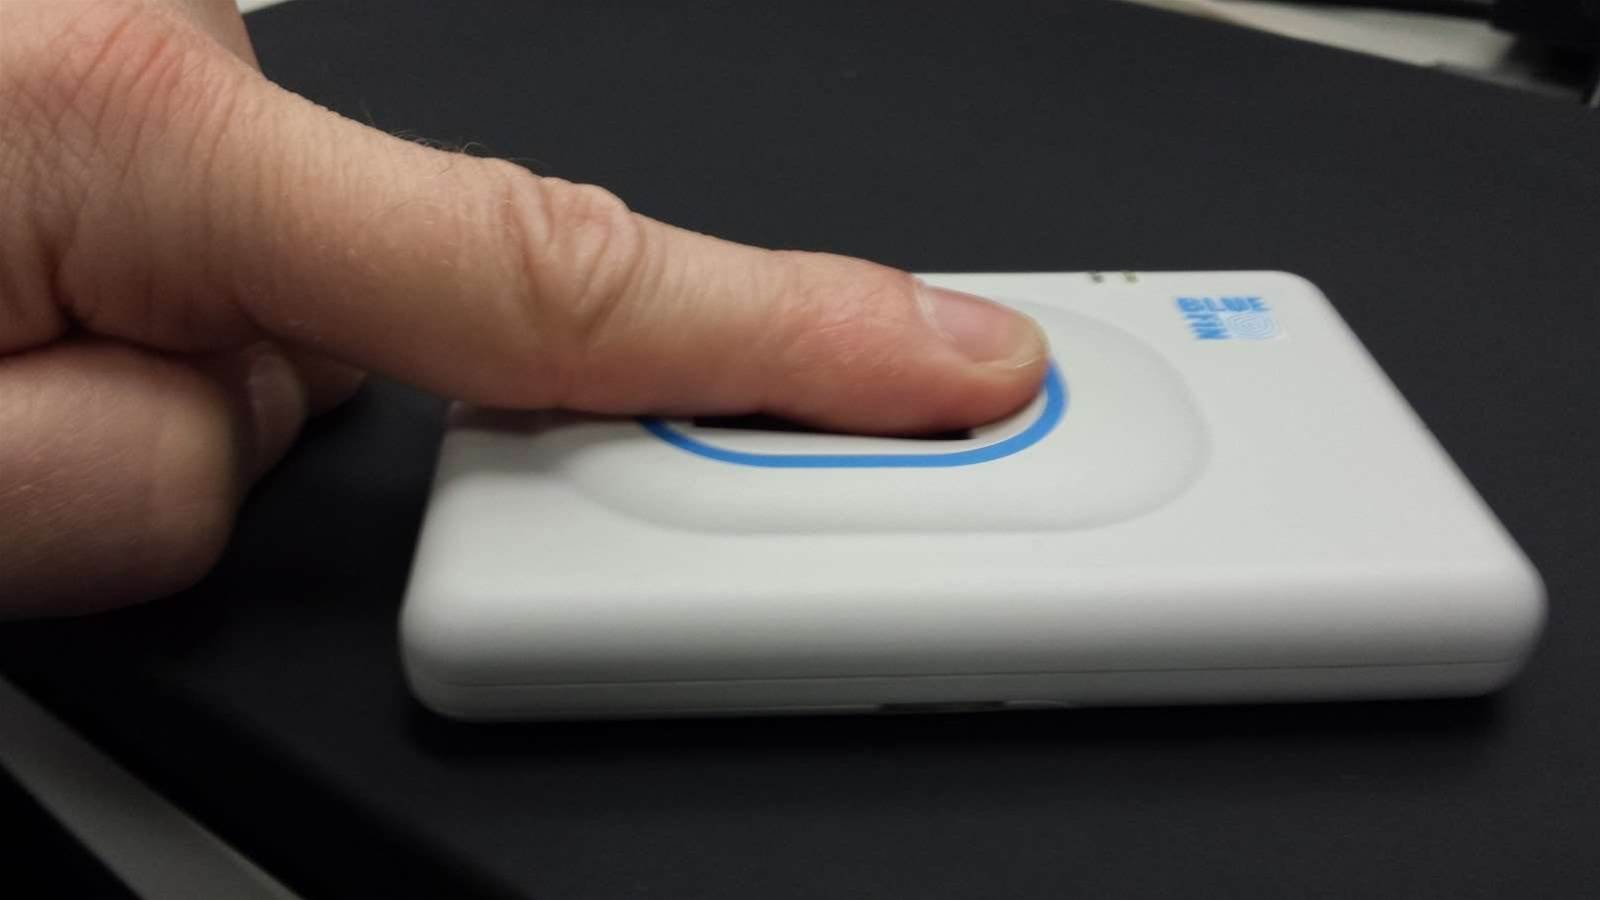 NSW cops to get portable fingerprint scanners